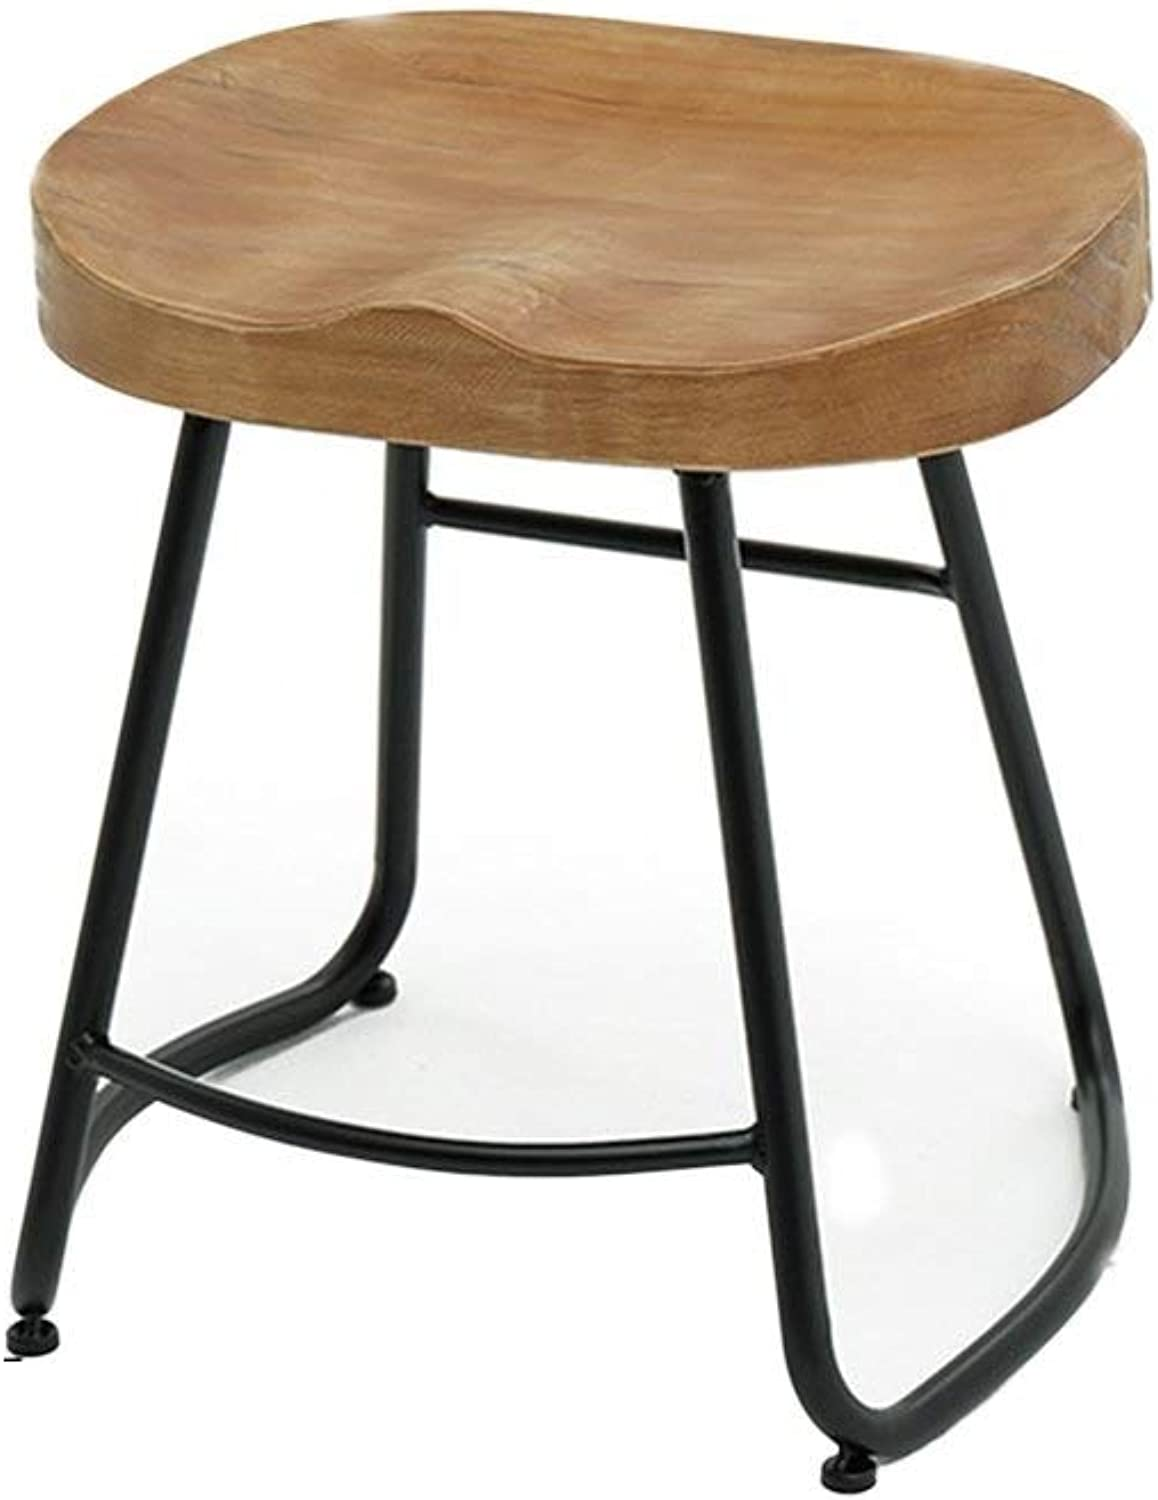 Household Bar Chair, Solid Wood Restaurant Multifunction Iron Art High Chair Coffee Shop Living Room Bar Counter Leisure Stool Various Styles (Size   44  35  45CM)